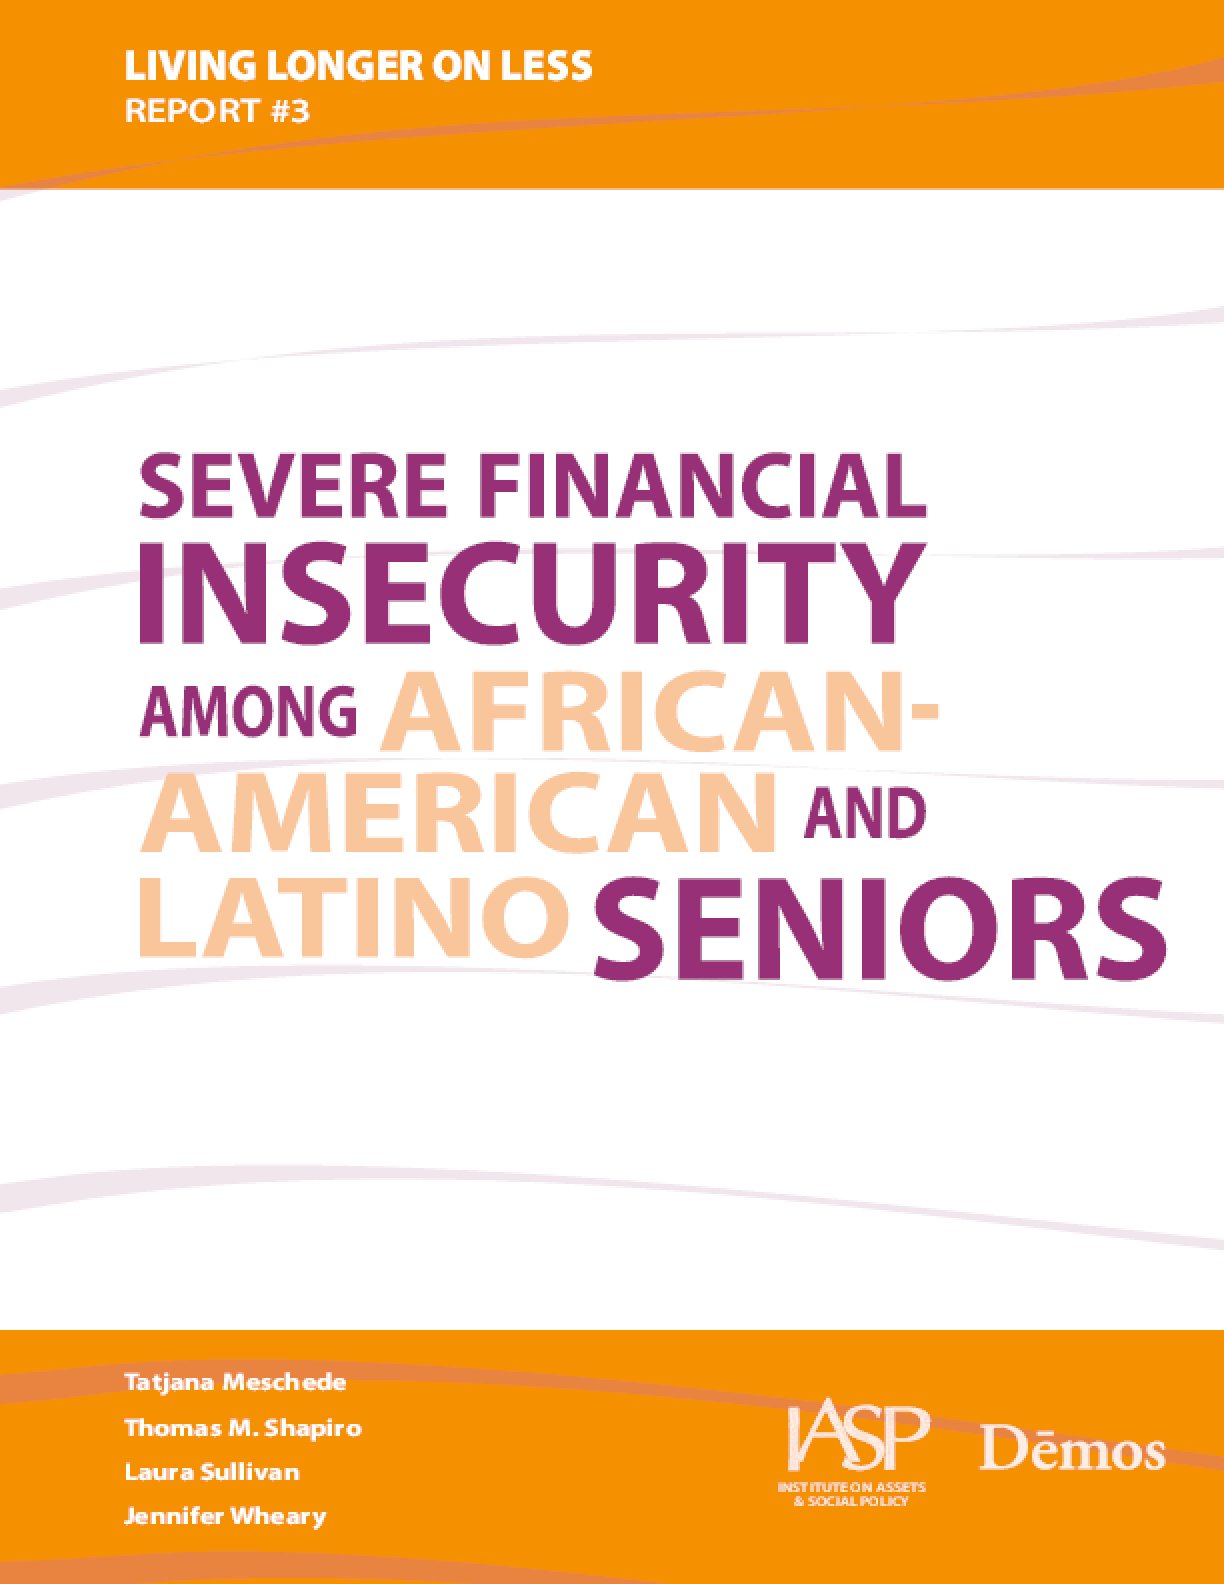 Severe Financial Insecurity Among African-American and Latino Seniors